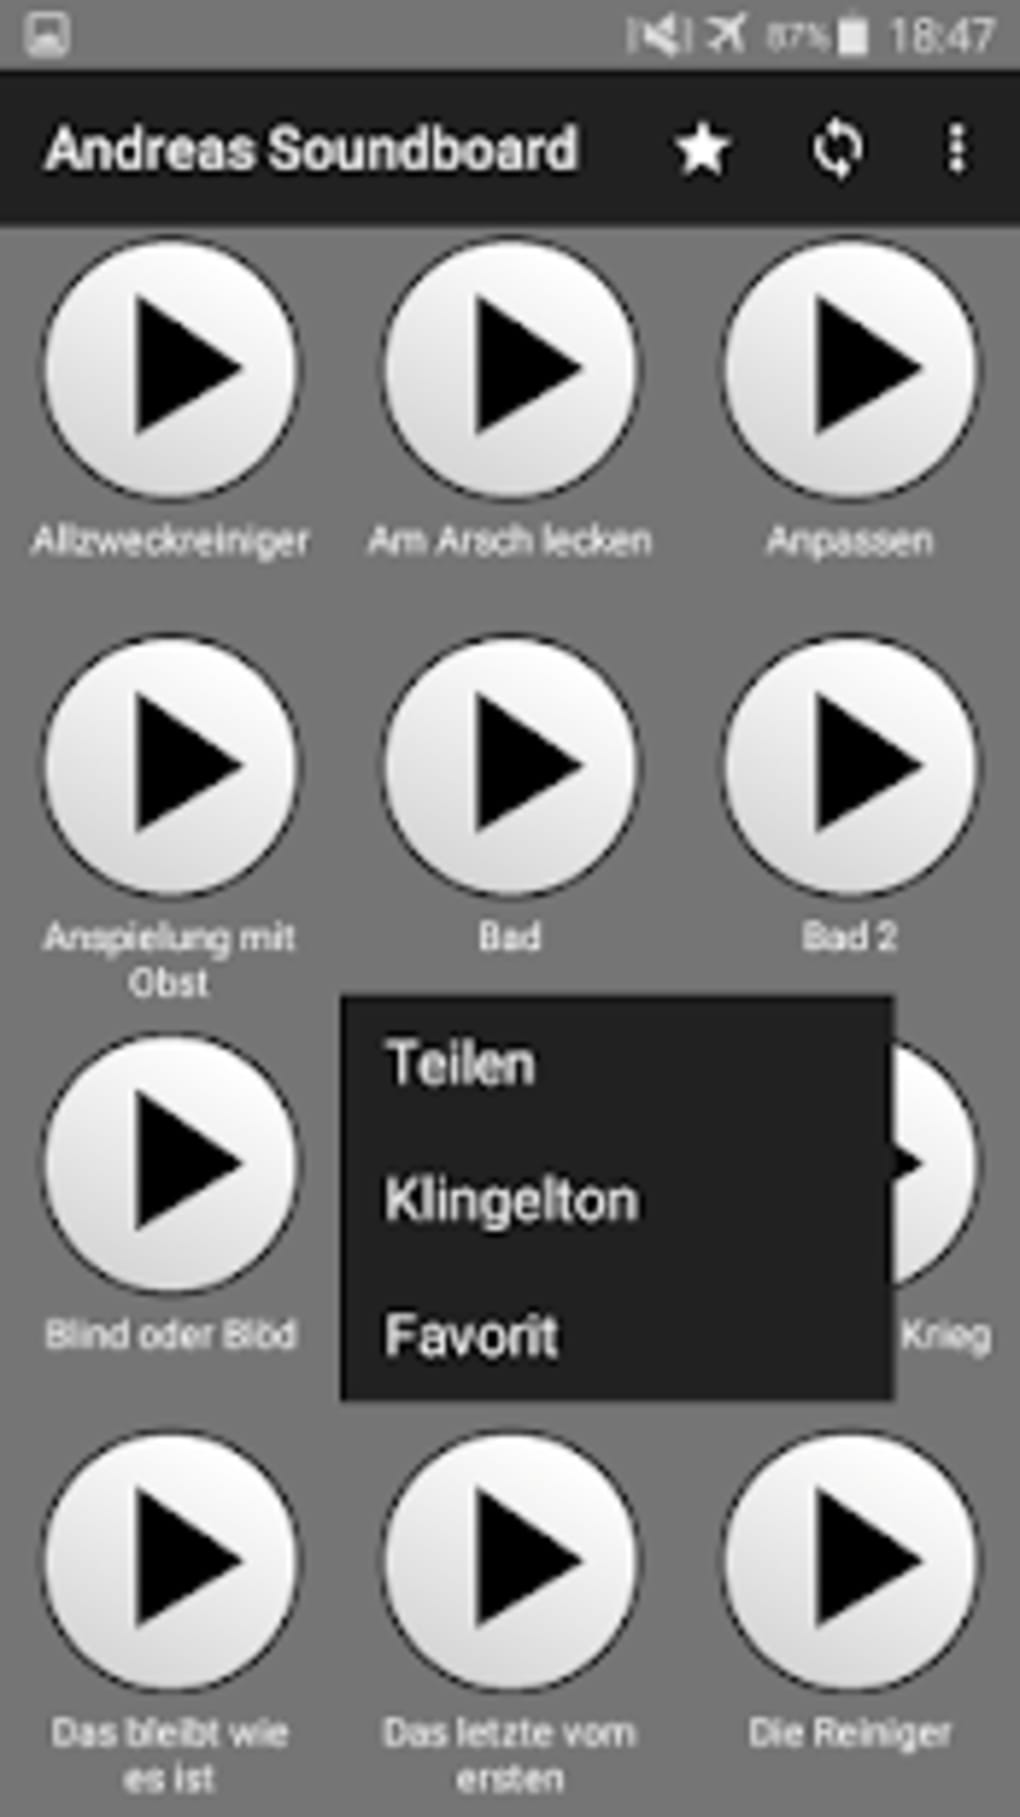 Psycho Andreas Soundboard for Android - Download